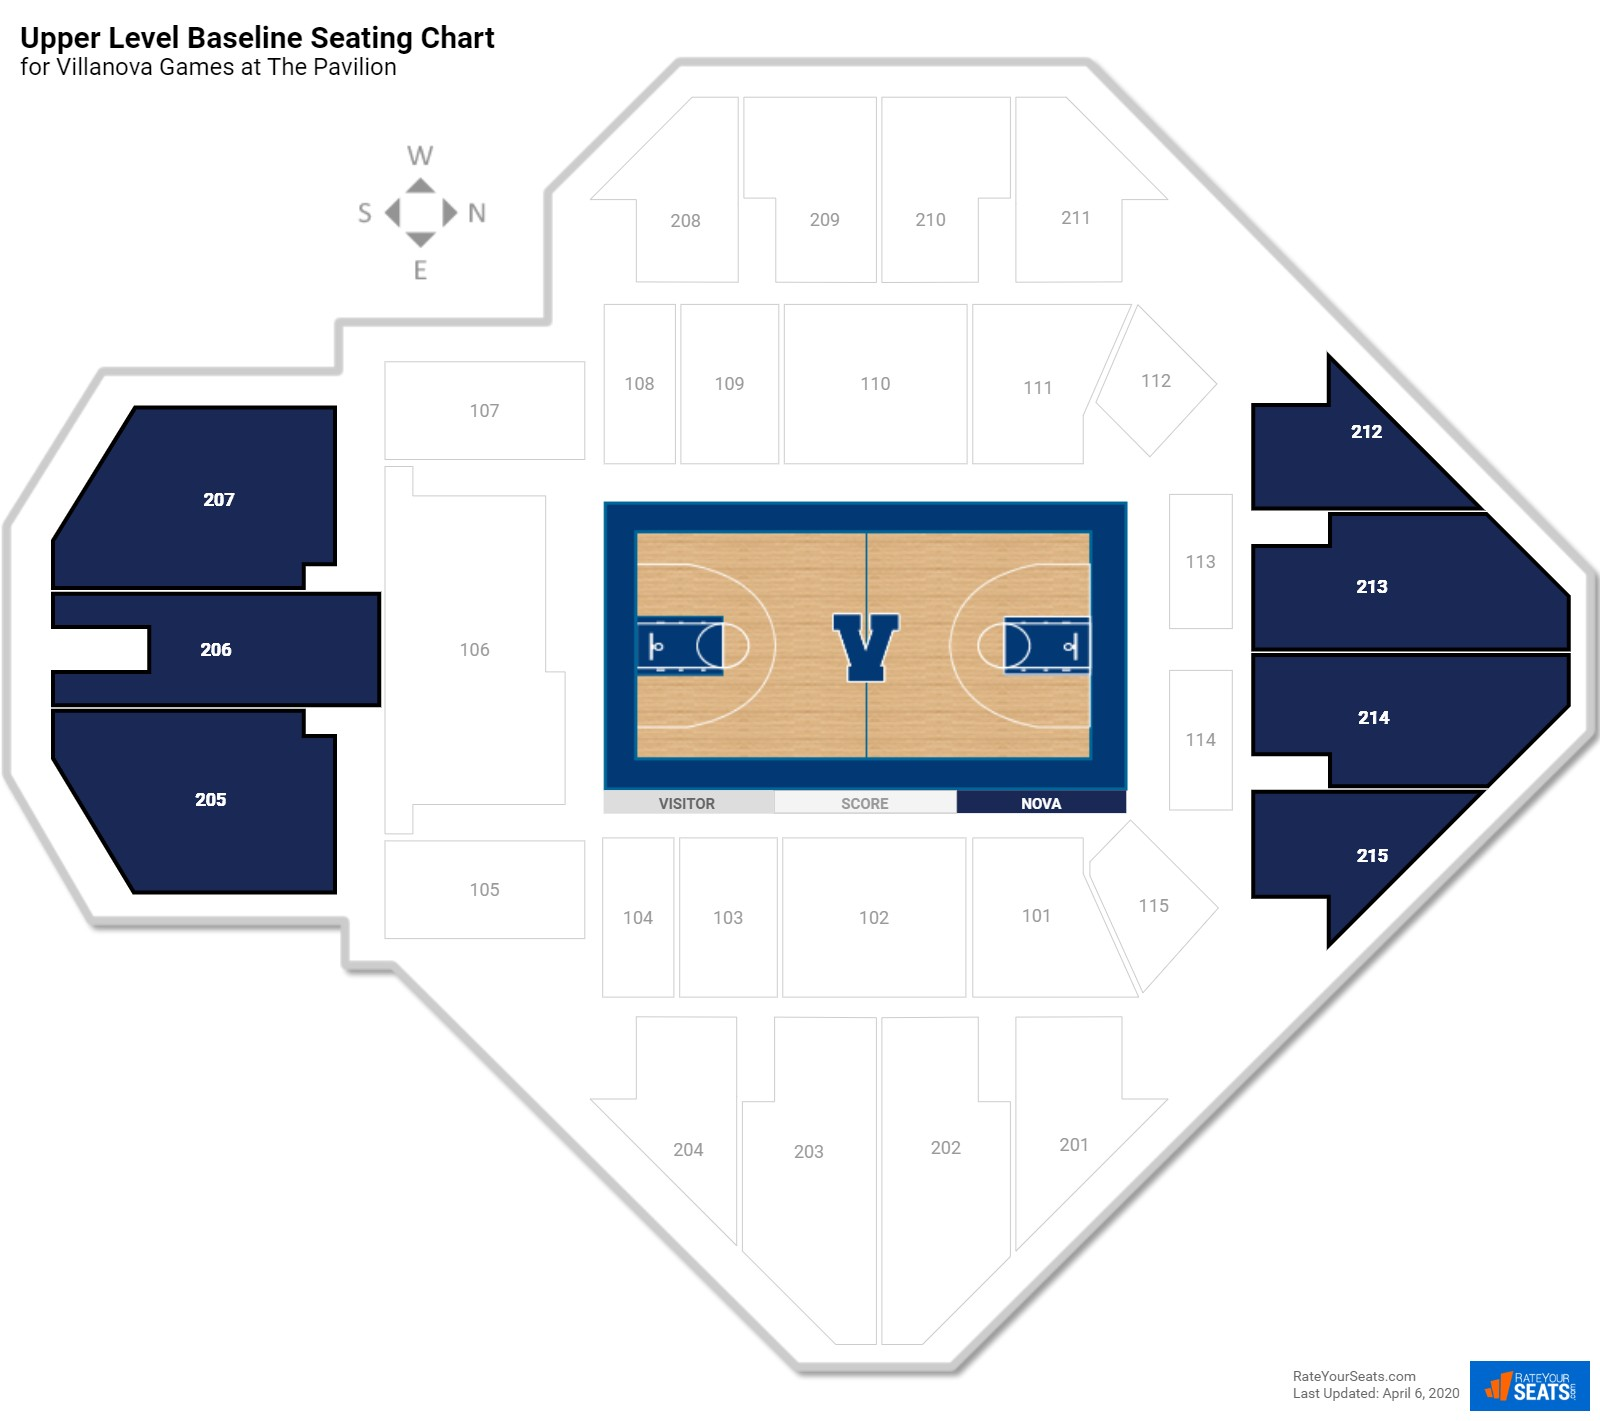 The Pavilion Upper Level End seating chart